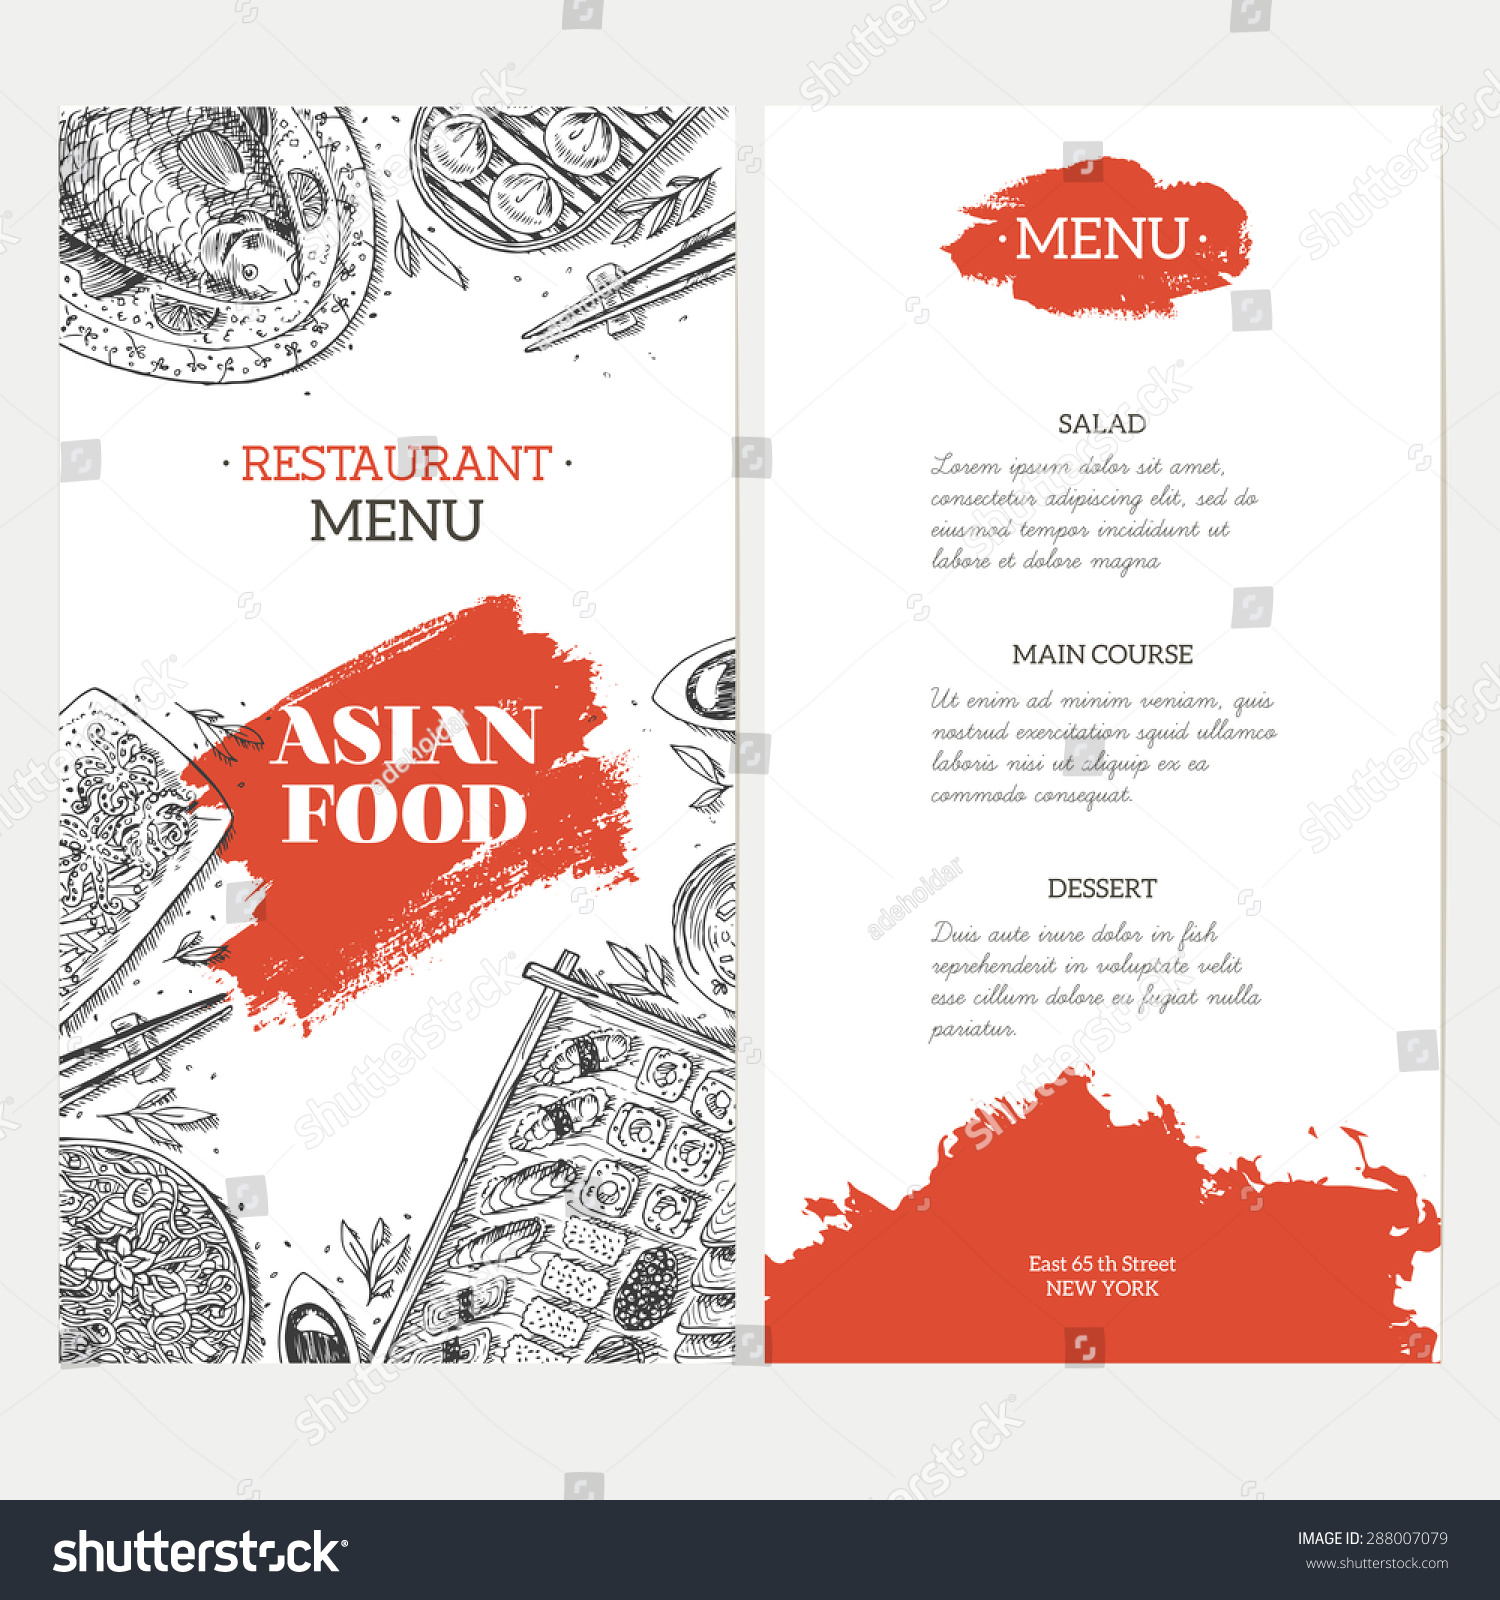 Asian food menu template linear graphic stock vector for Akina japanese cuisine menu